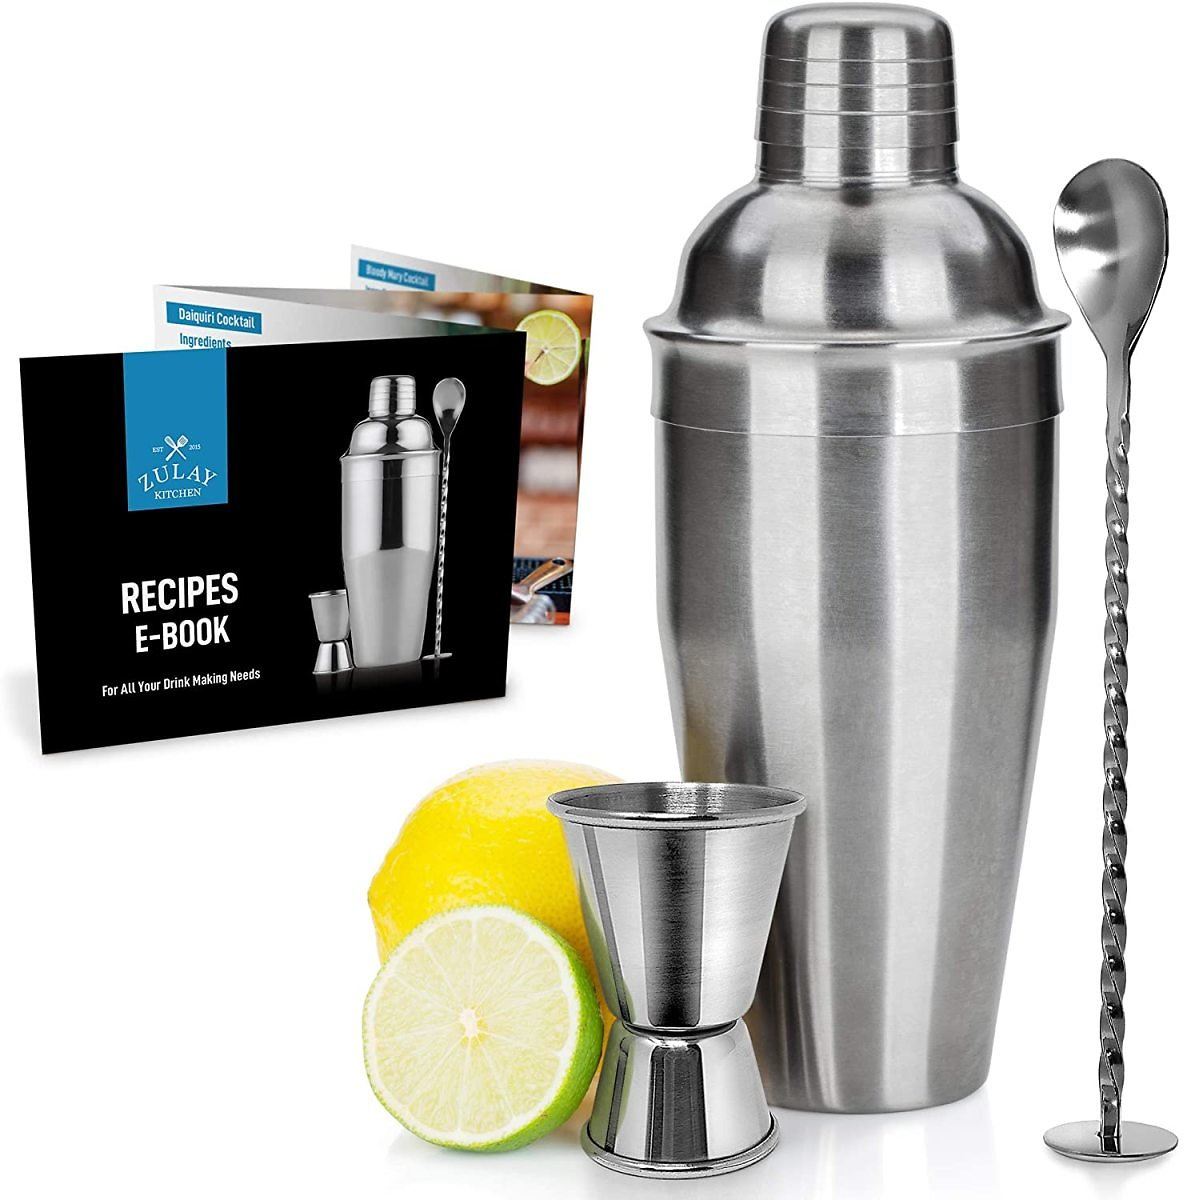 9% OFF   Professional Cocktail Shaker with Accessories - Sleek Martini Shaker with Measuring Jigger & Mixing Spoon